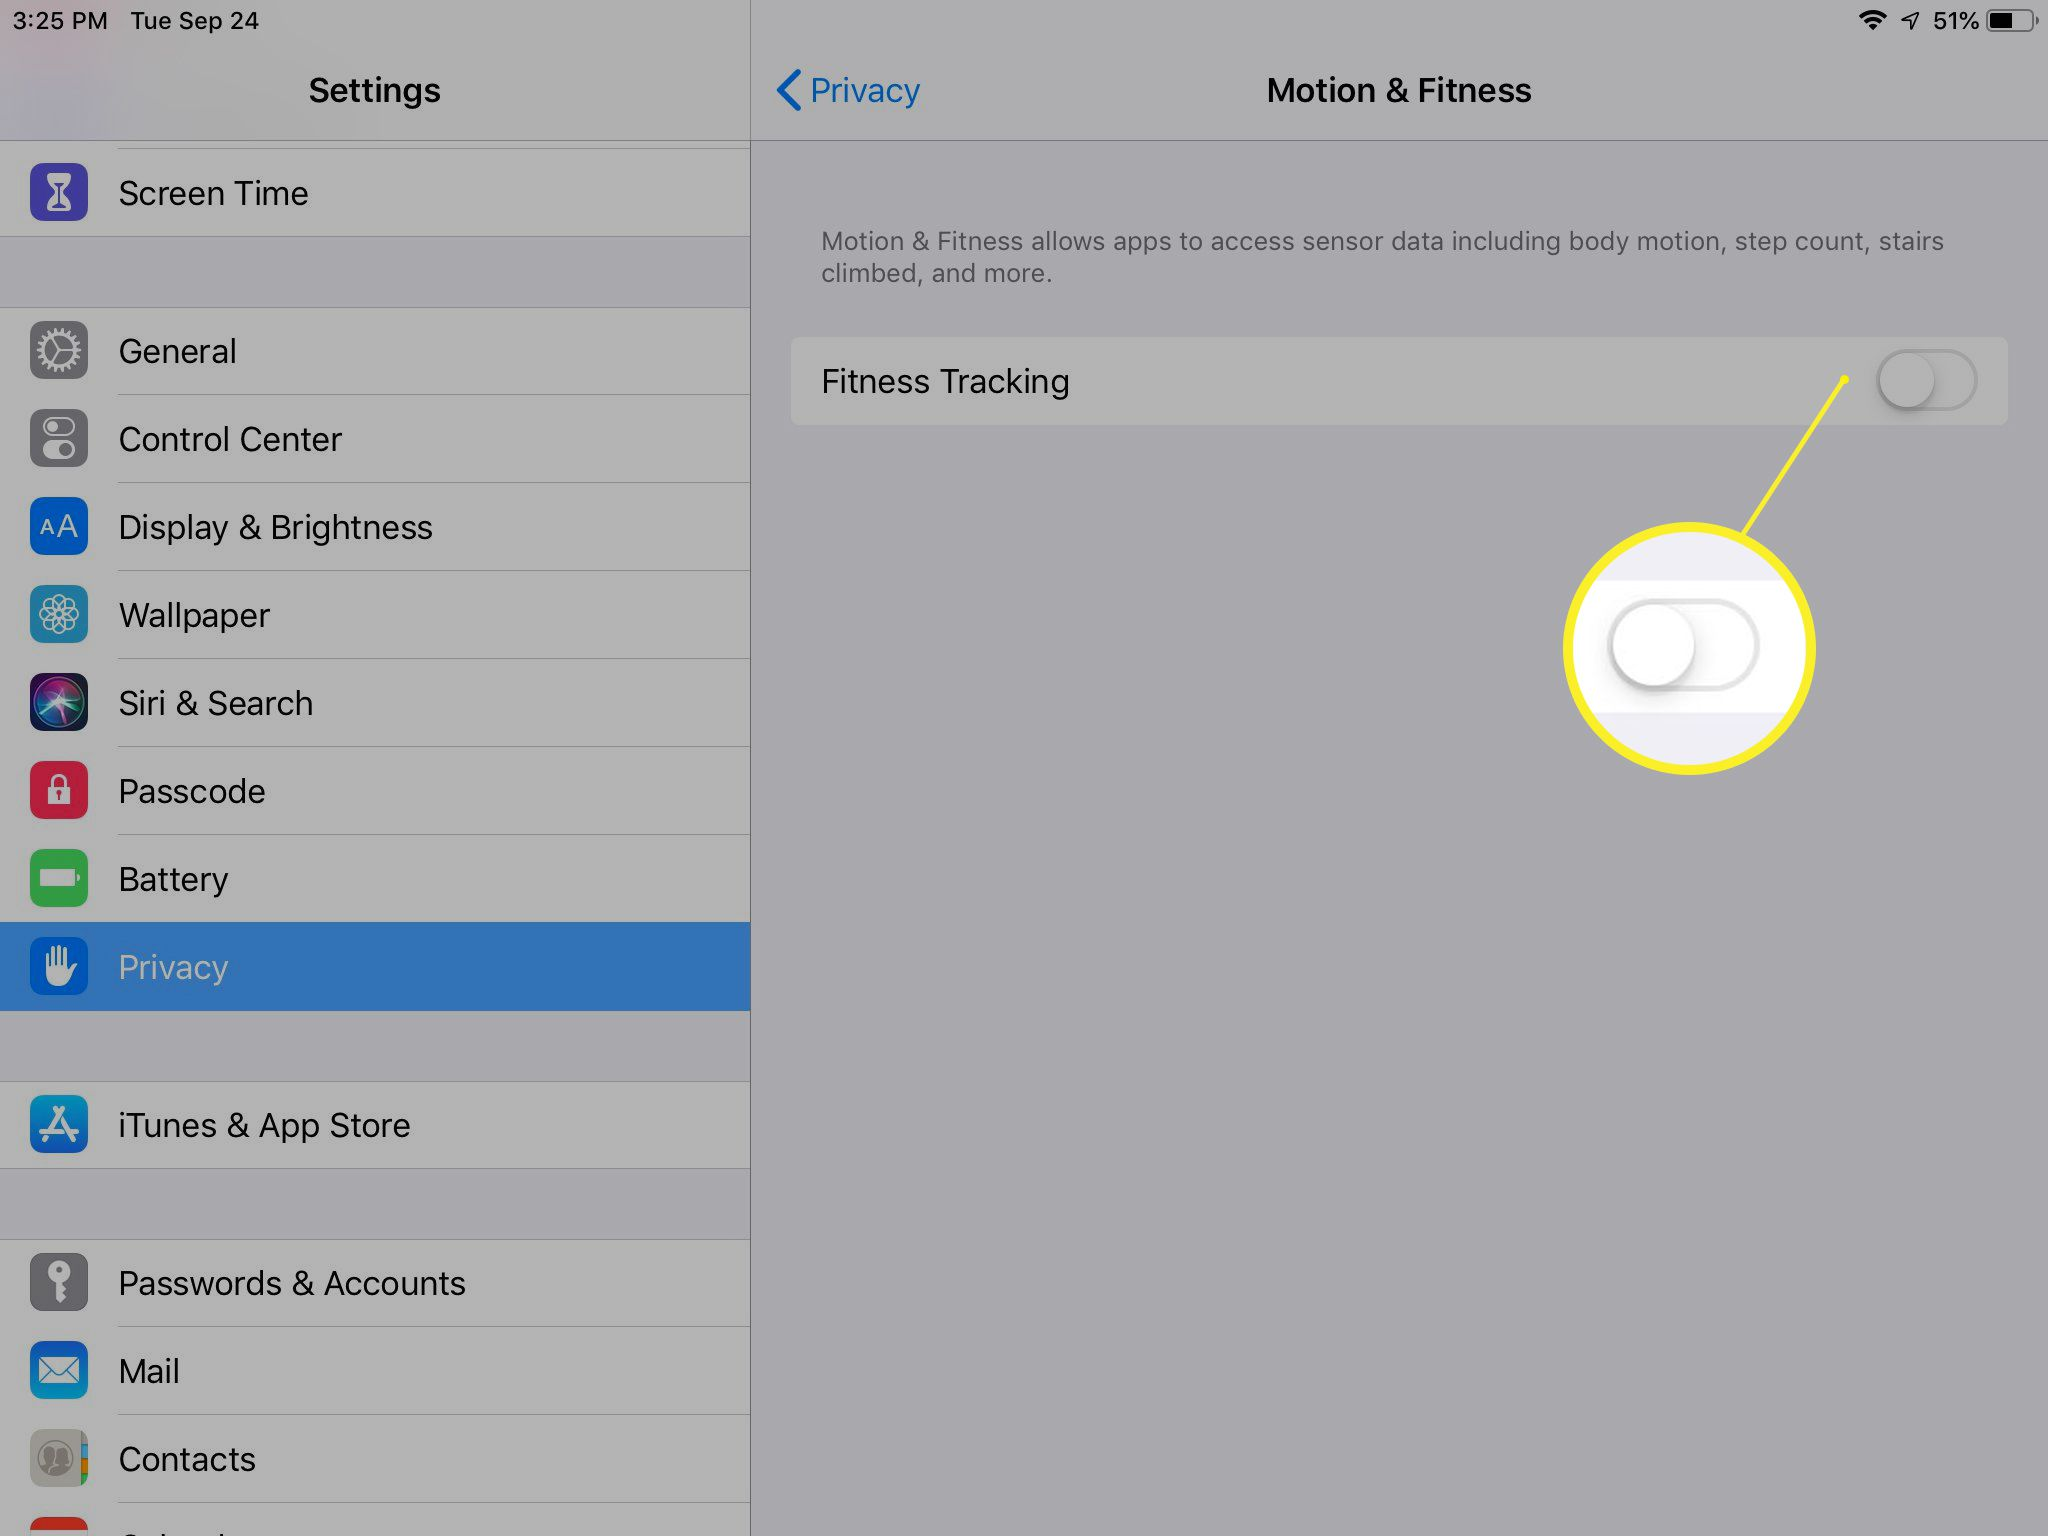 Fitness Tracking toggle